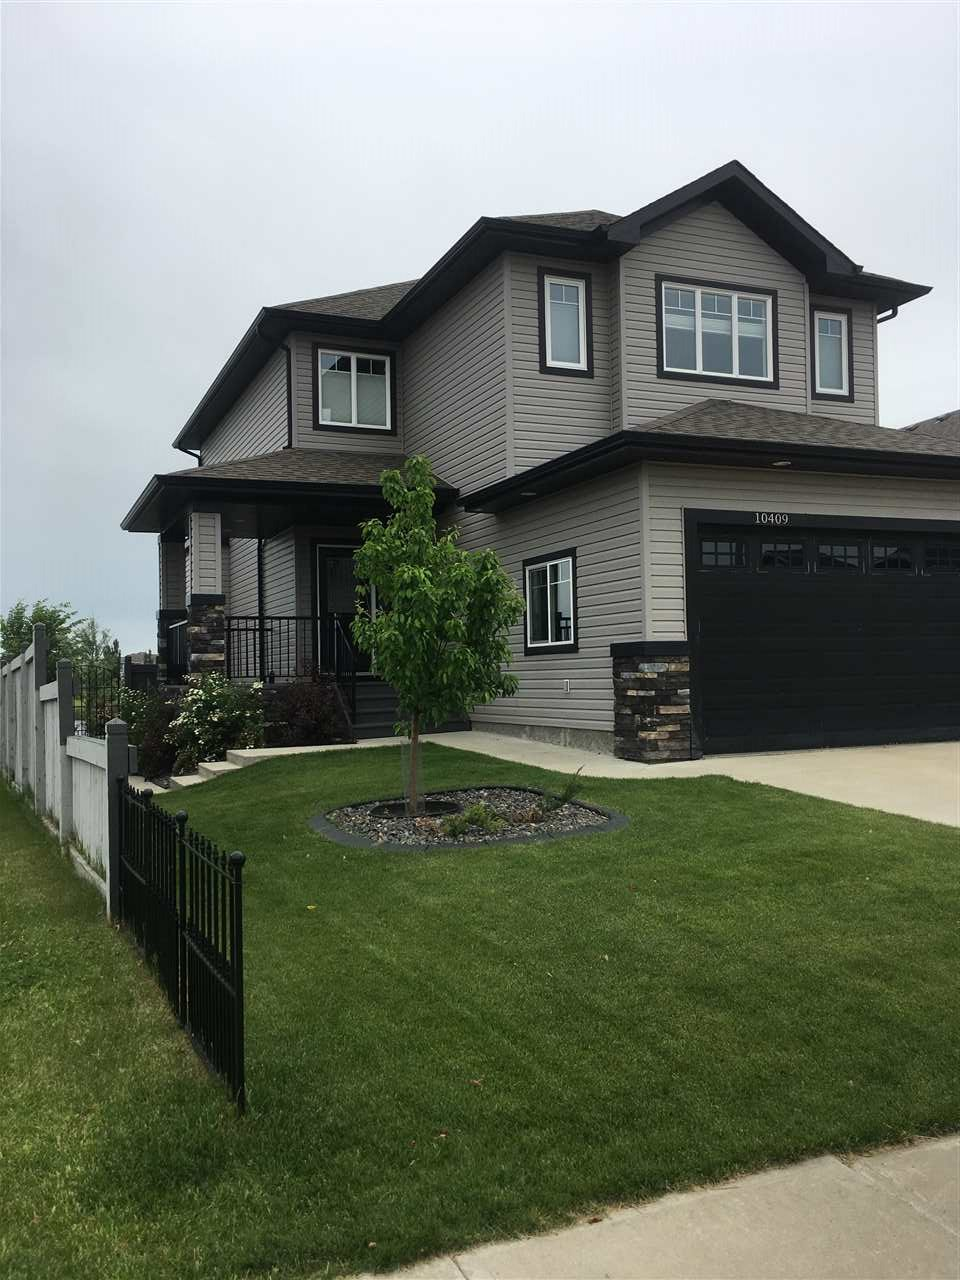 FEATURED LISTING: 10409 97 Street Morinville